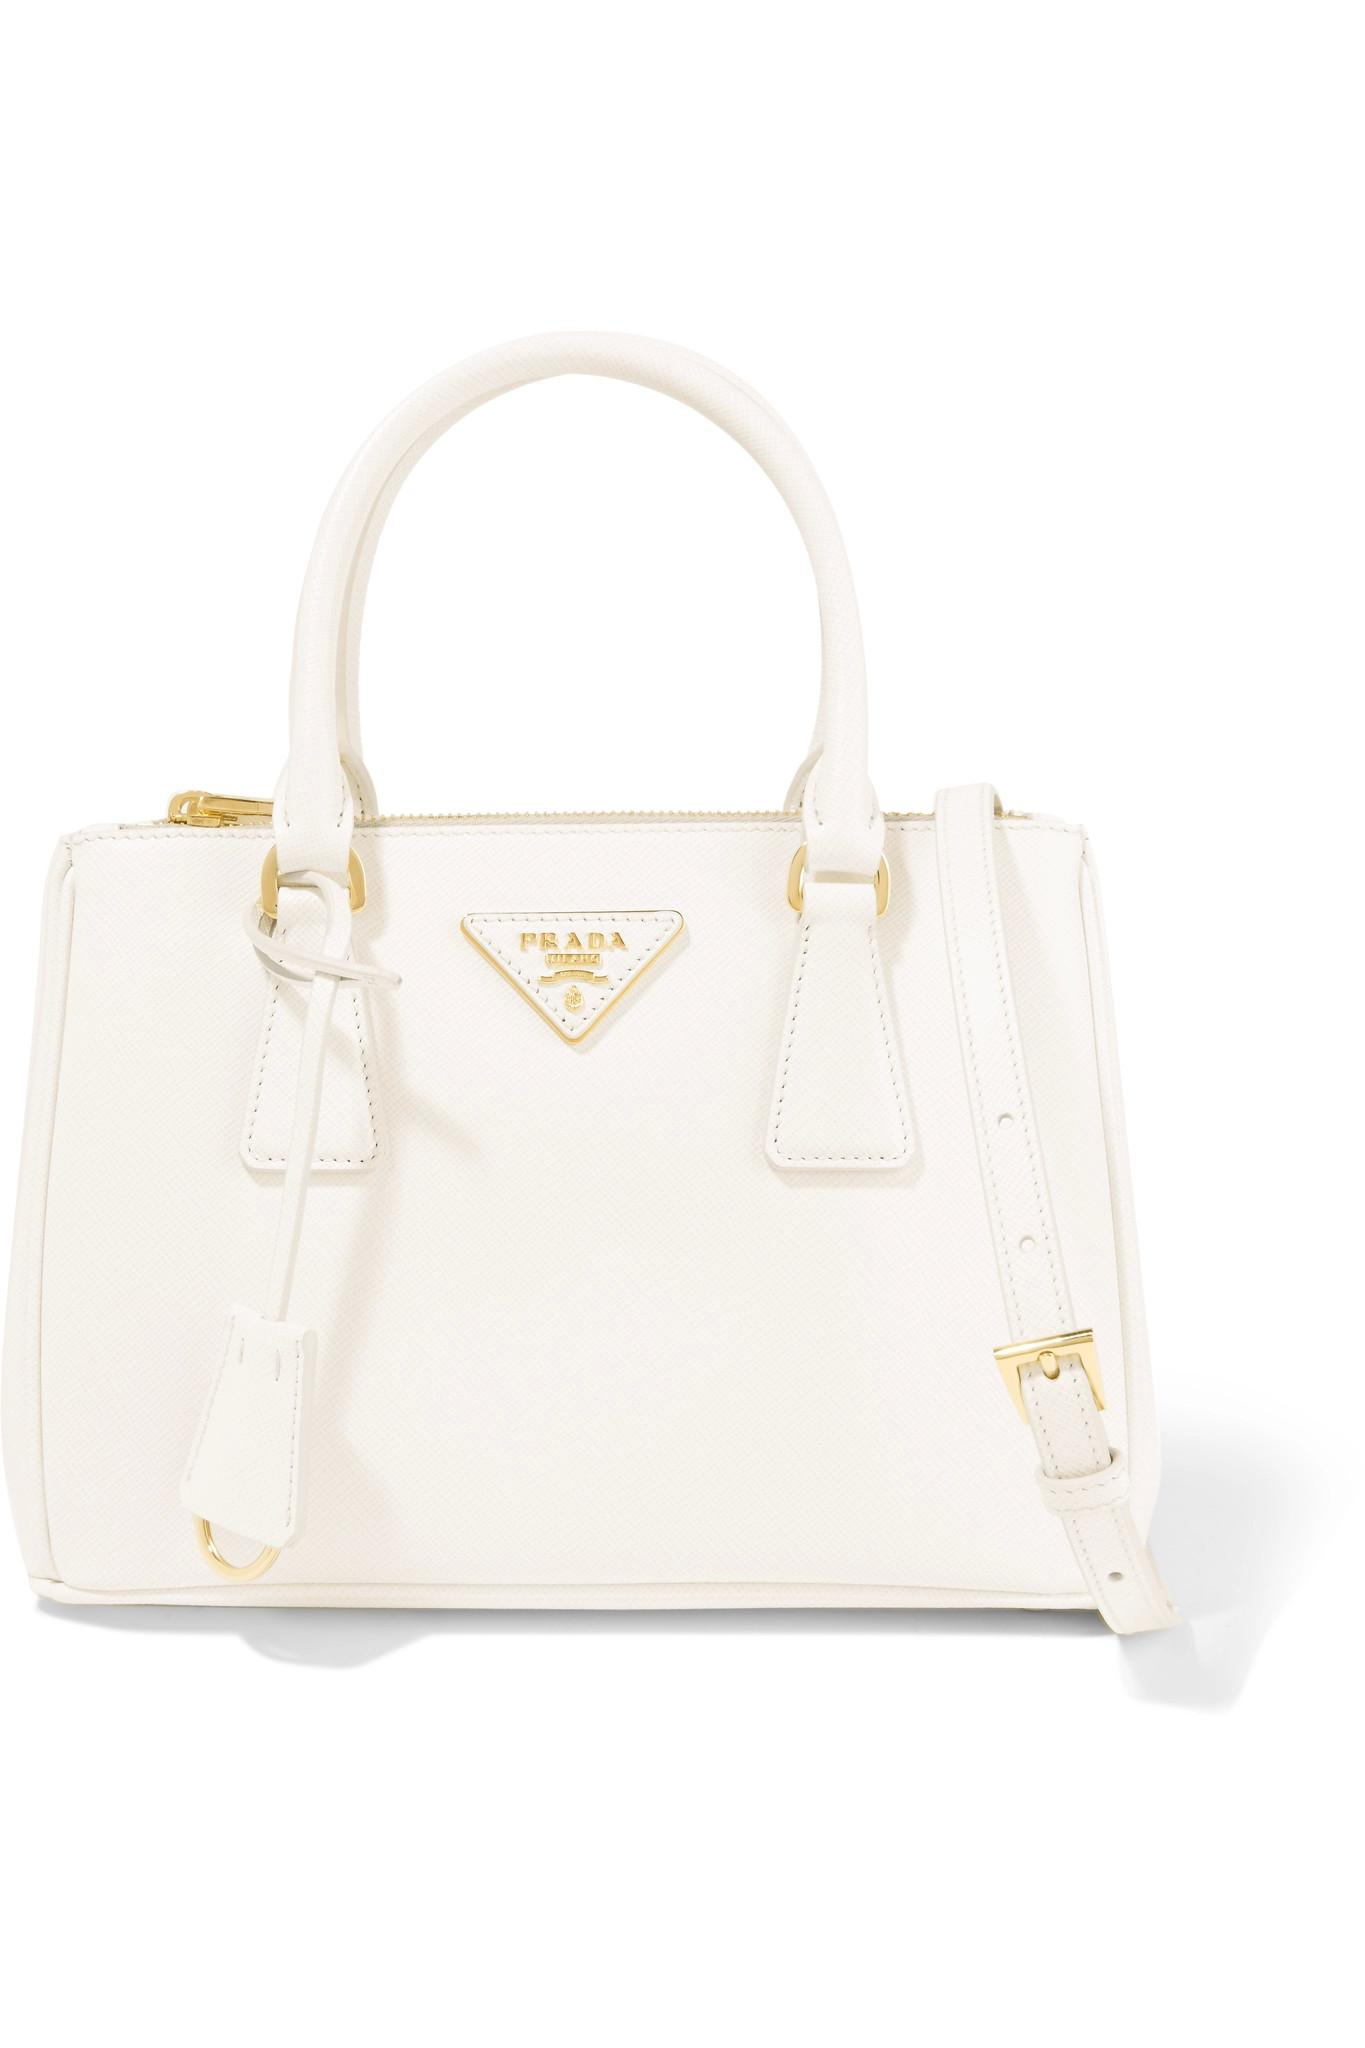 prada galleria small textured leather tote in white lyst. Black Bedroom Furniture Sets. Home Design Ideas